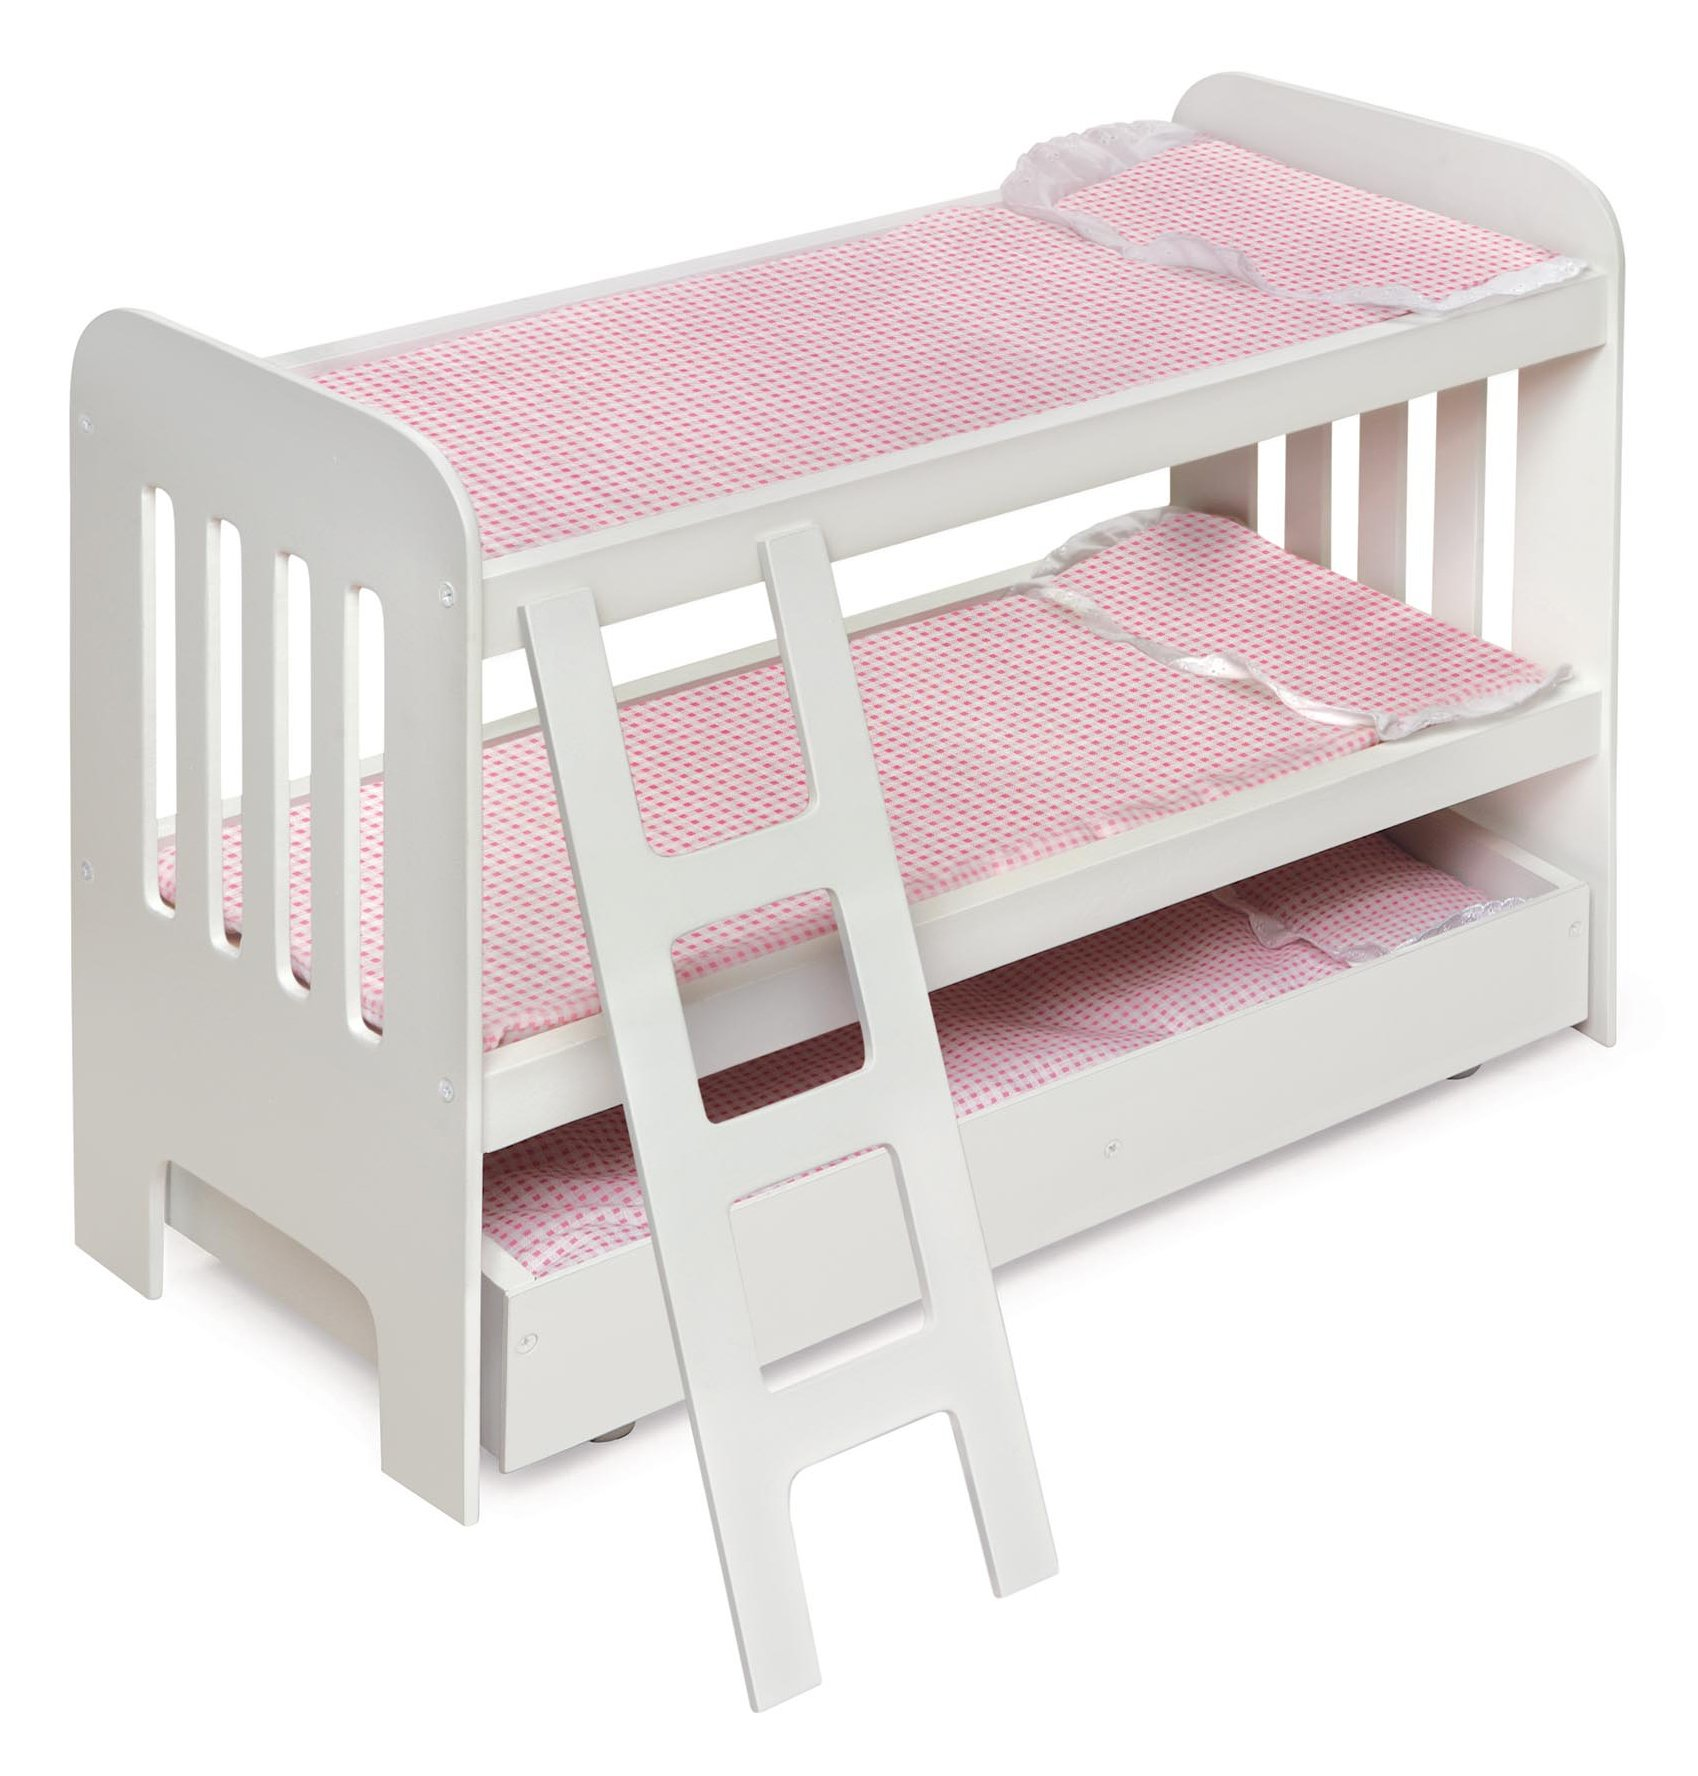 Trundle Doll Bunk Bed with Bedding, Ladder, and Free Personalization Kit (fits American Girl Dolls) by Badger Basket